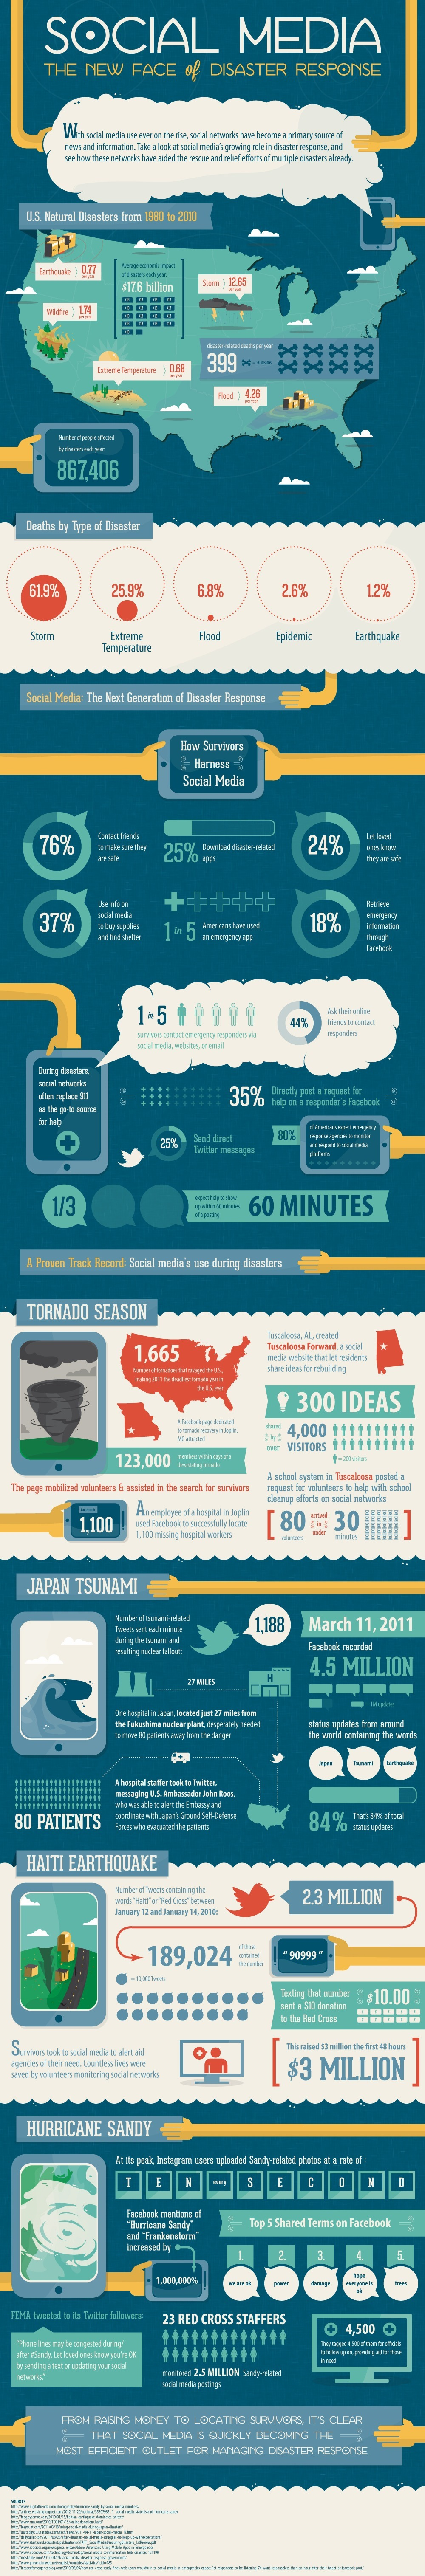 (Source:   Social media impact on disaster response  )